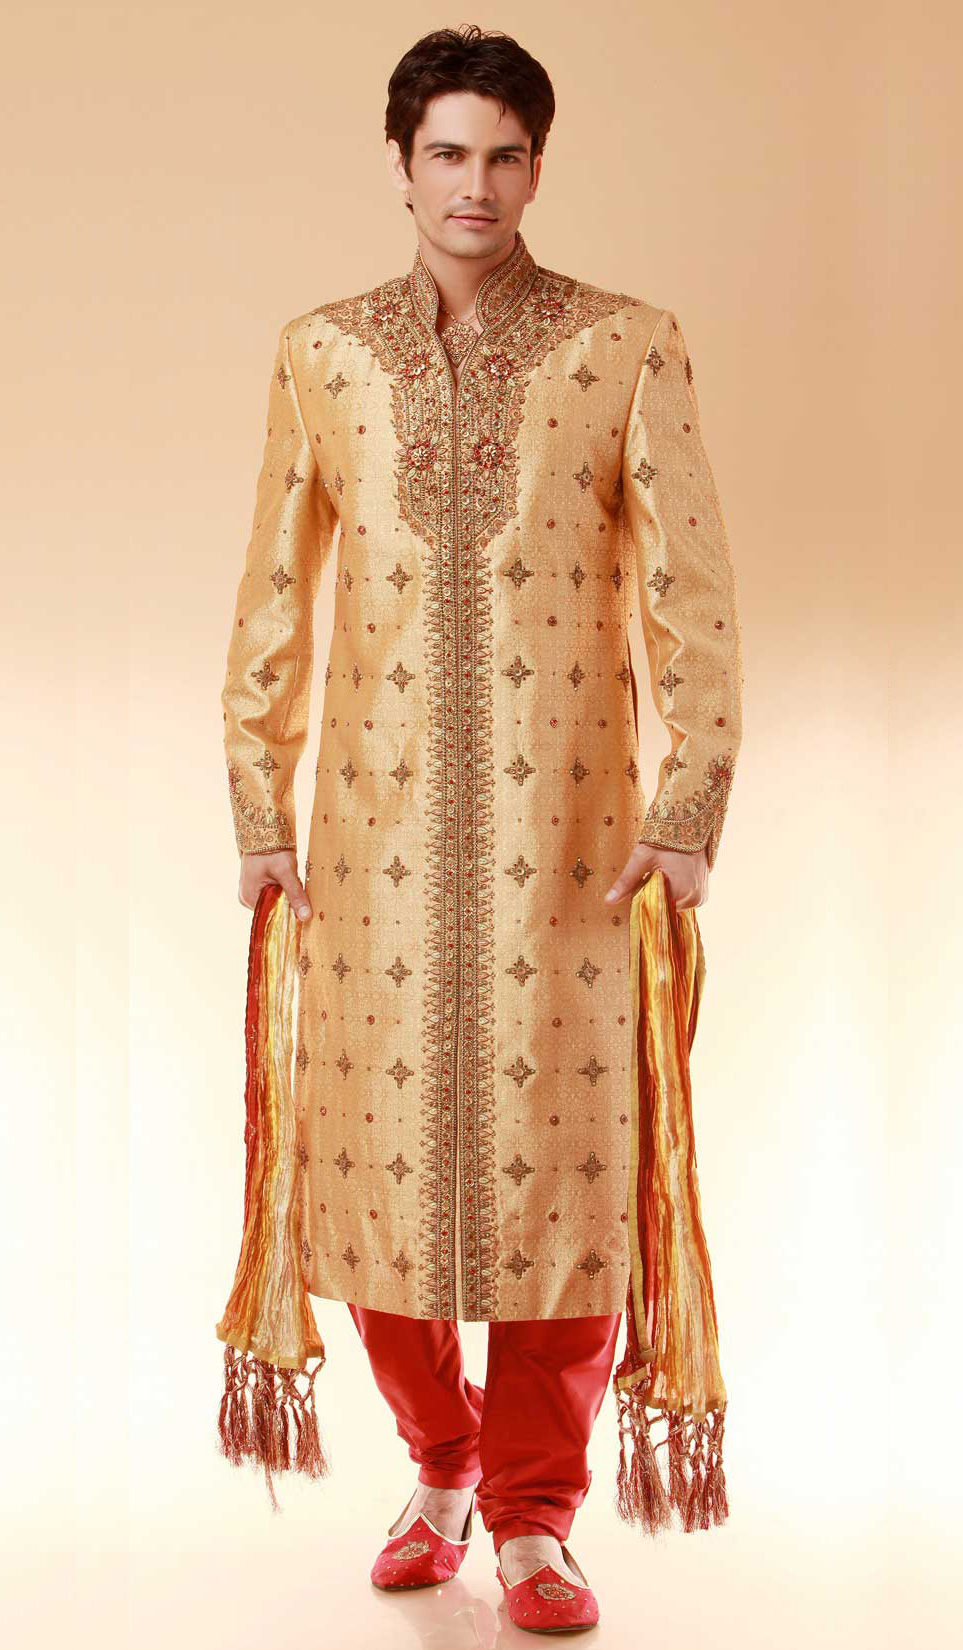 Online Brocade Designer Indian Wedding Sherwani Beige Size